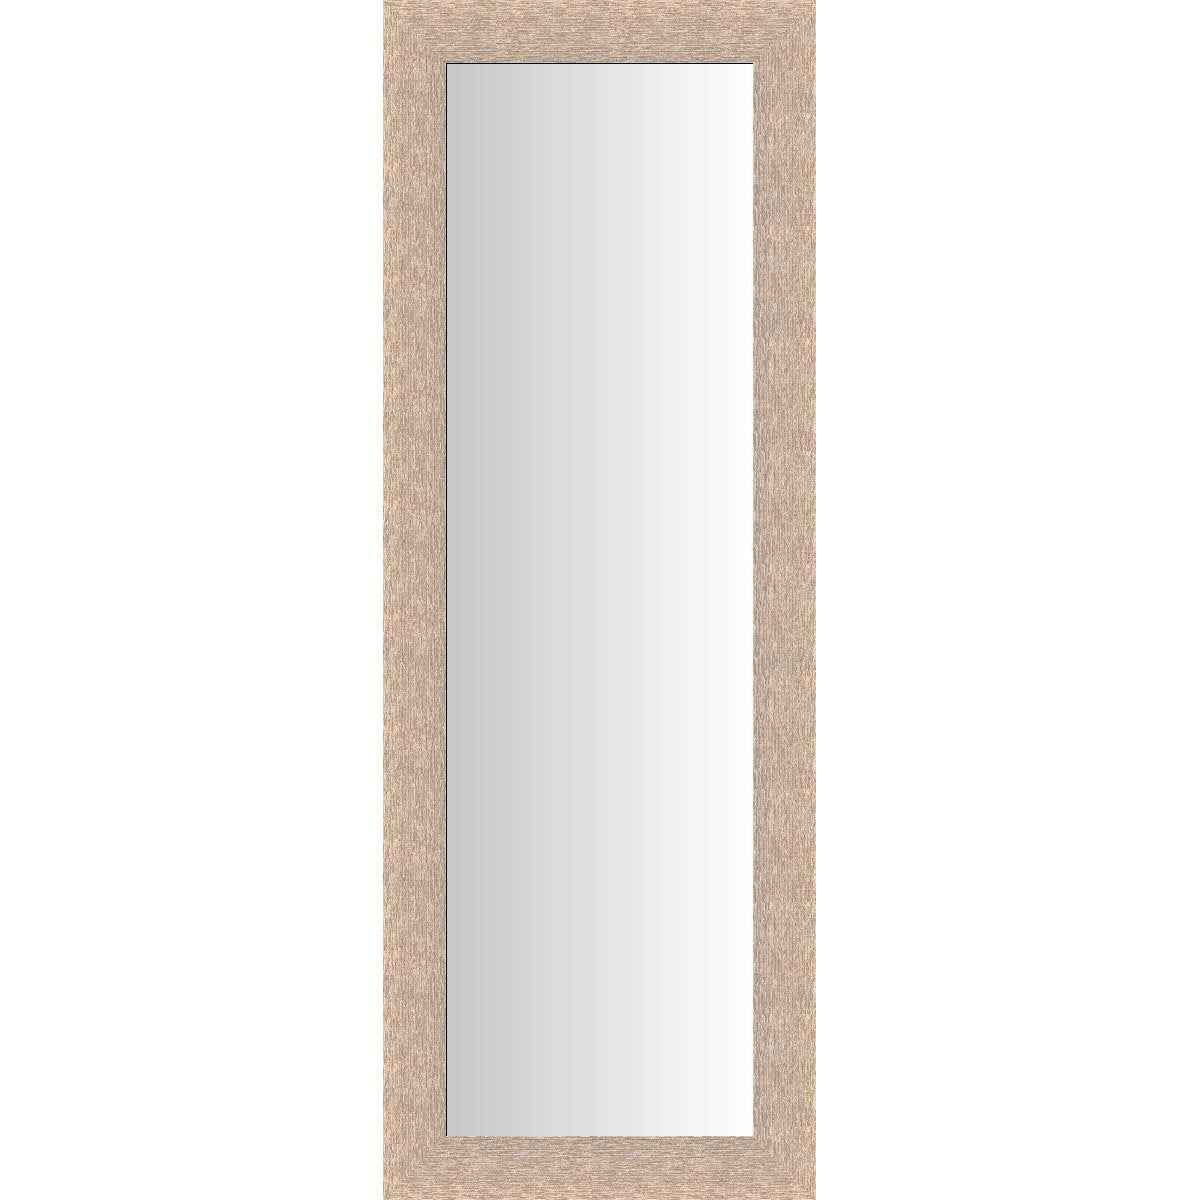 Miroir dublin ch ne clair 40x140 cm leroy merlin for Grand miroir leroy merlin